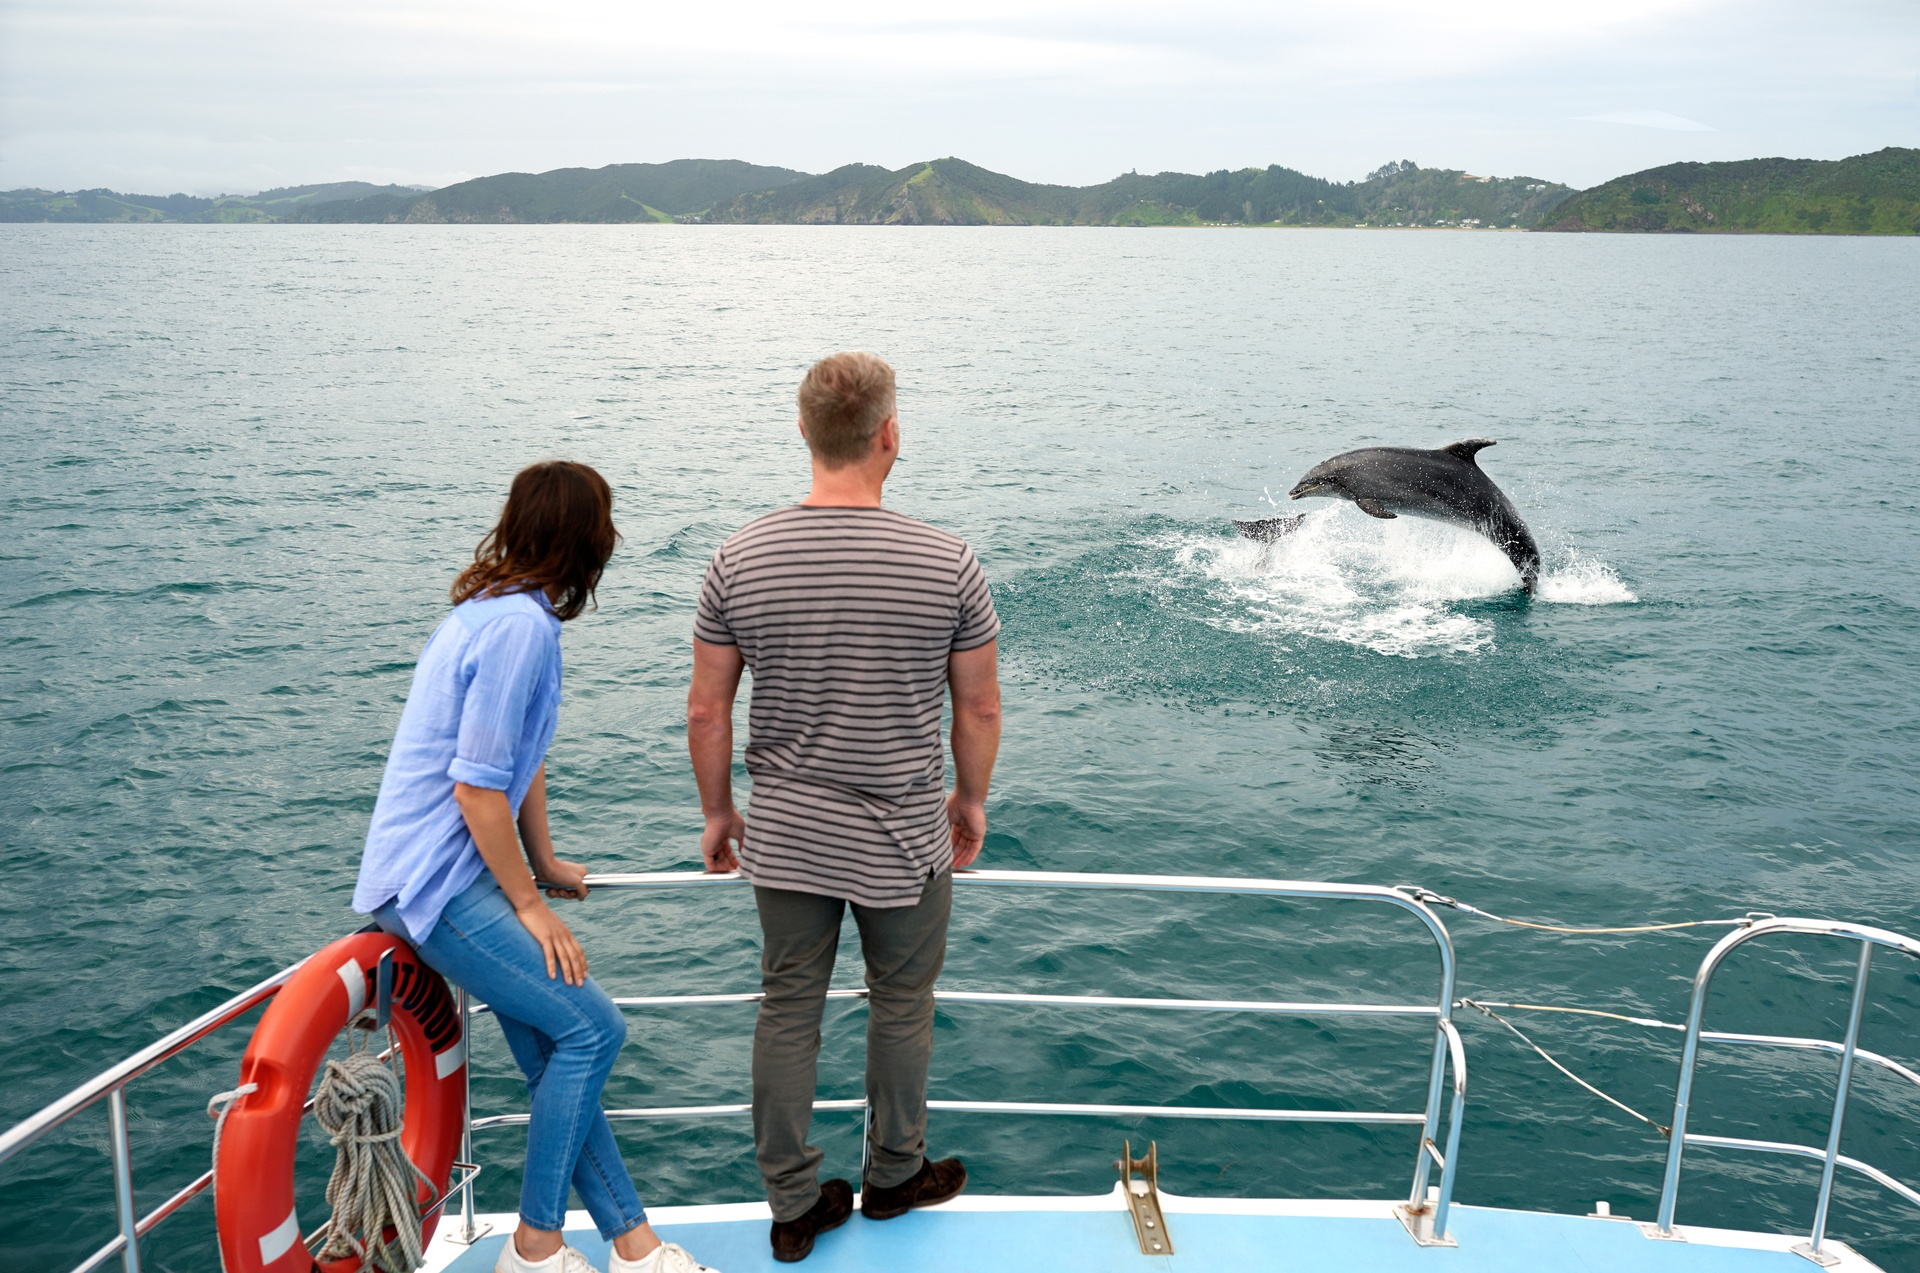 Delfin Whatching, Bay of Islands, Nordinsel © Fraser Clements